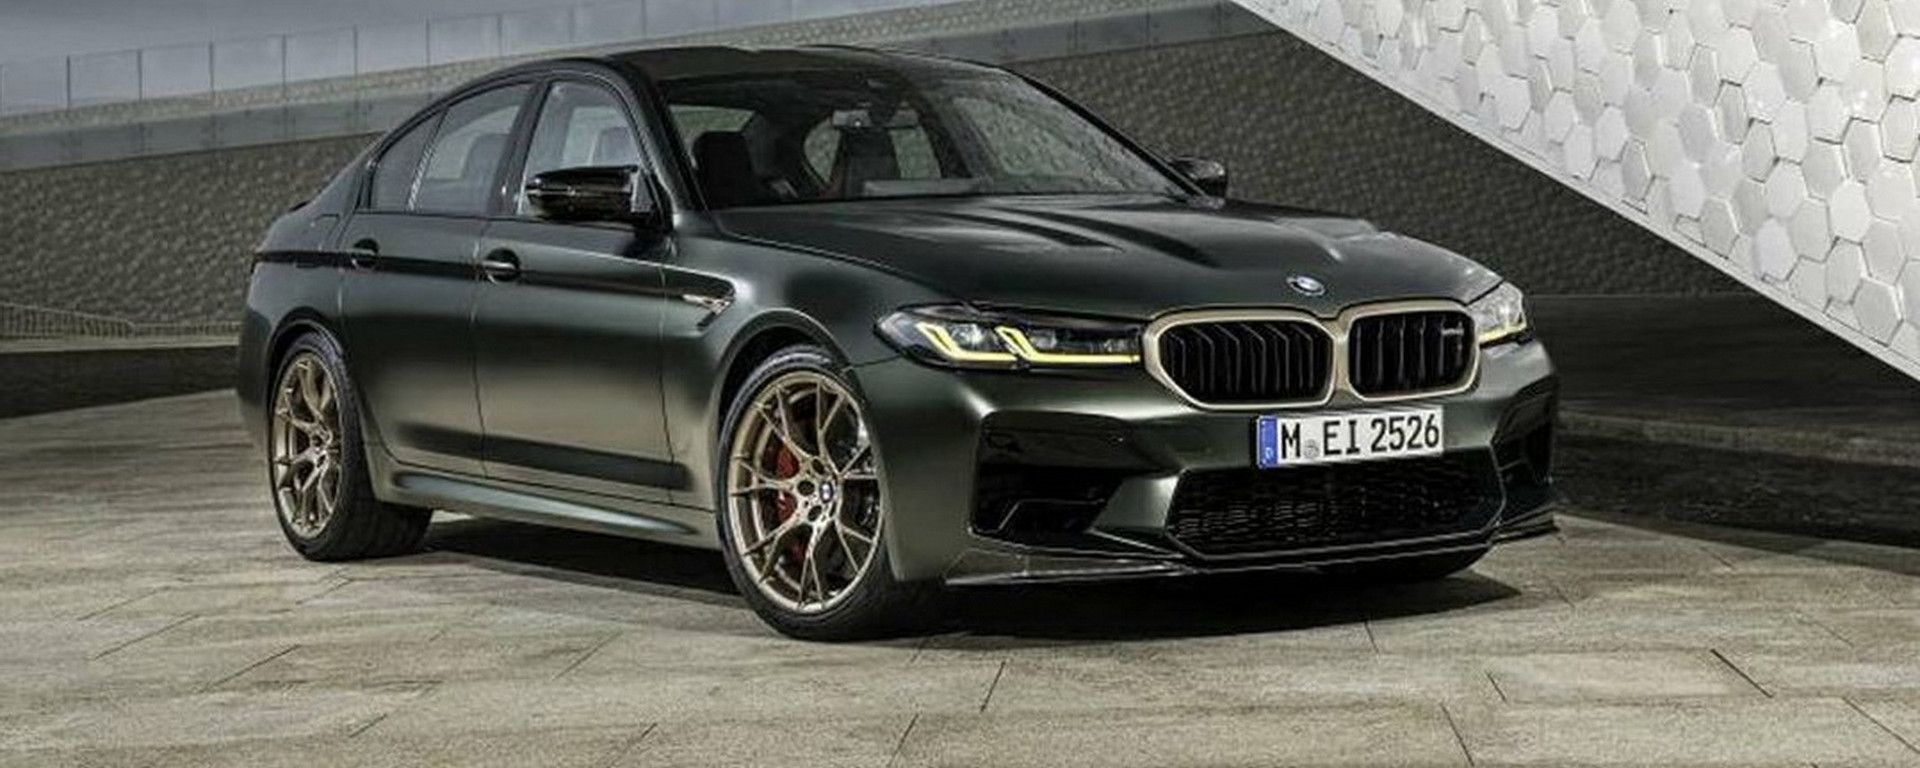 BMW M5 CS 2021, vista 3/4 anteriore